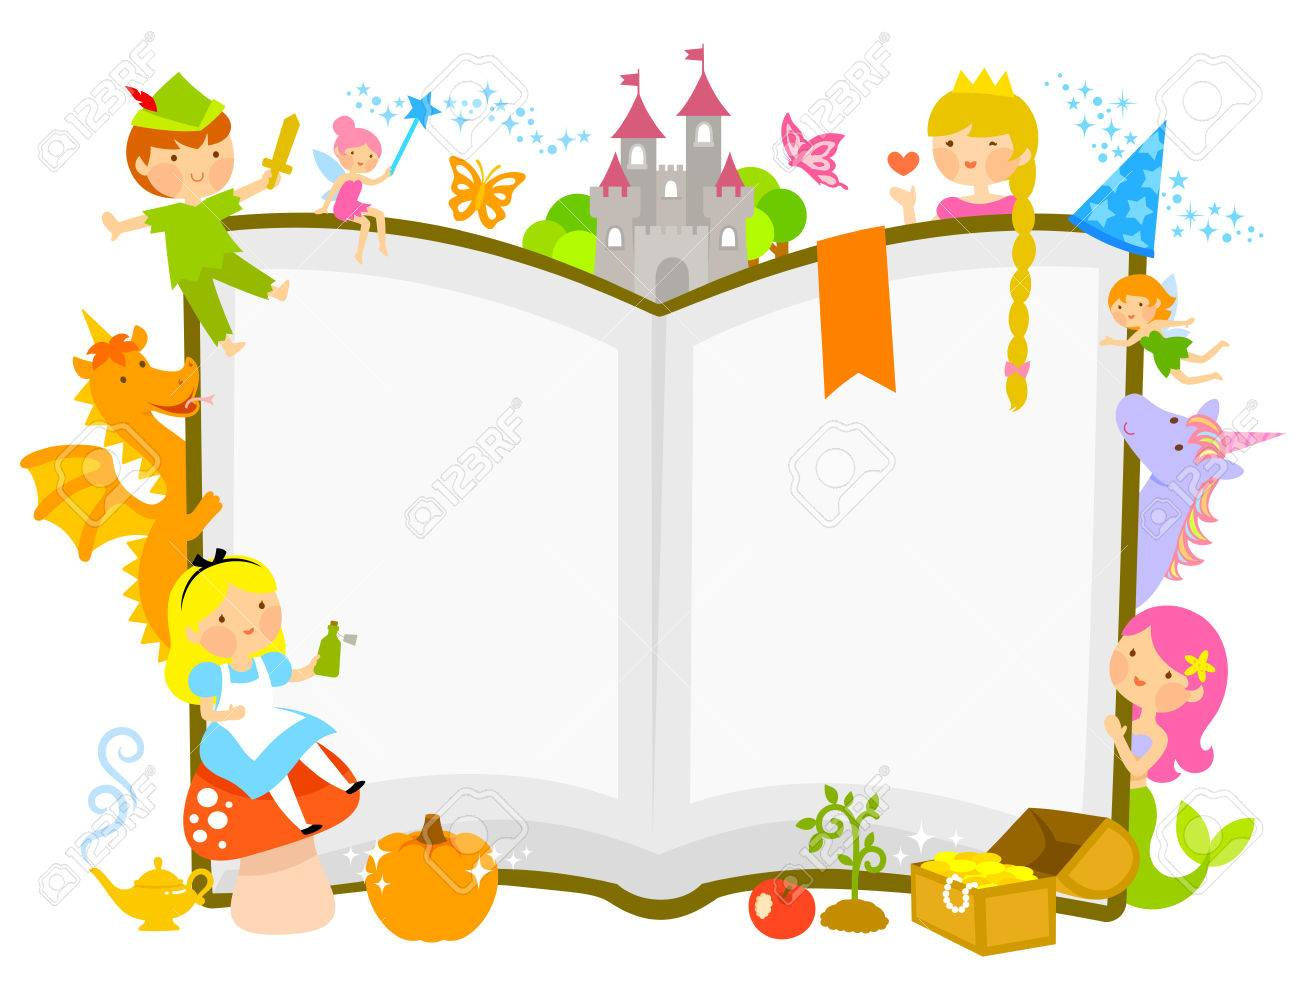 characters of fairytales around an open book royalty free cliparts rh 123rf com John Henry Clip Art Storybook Characters Clip Art